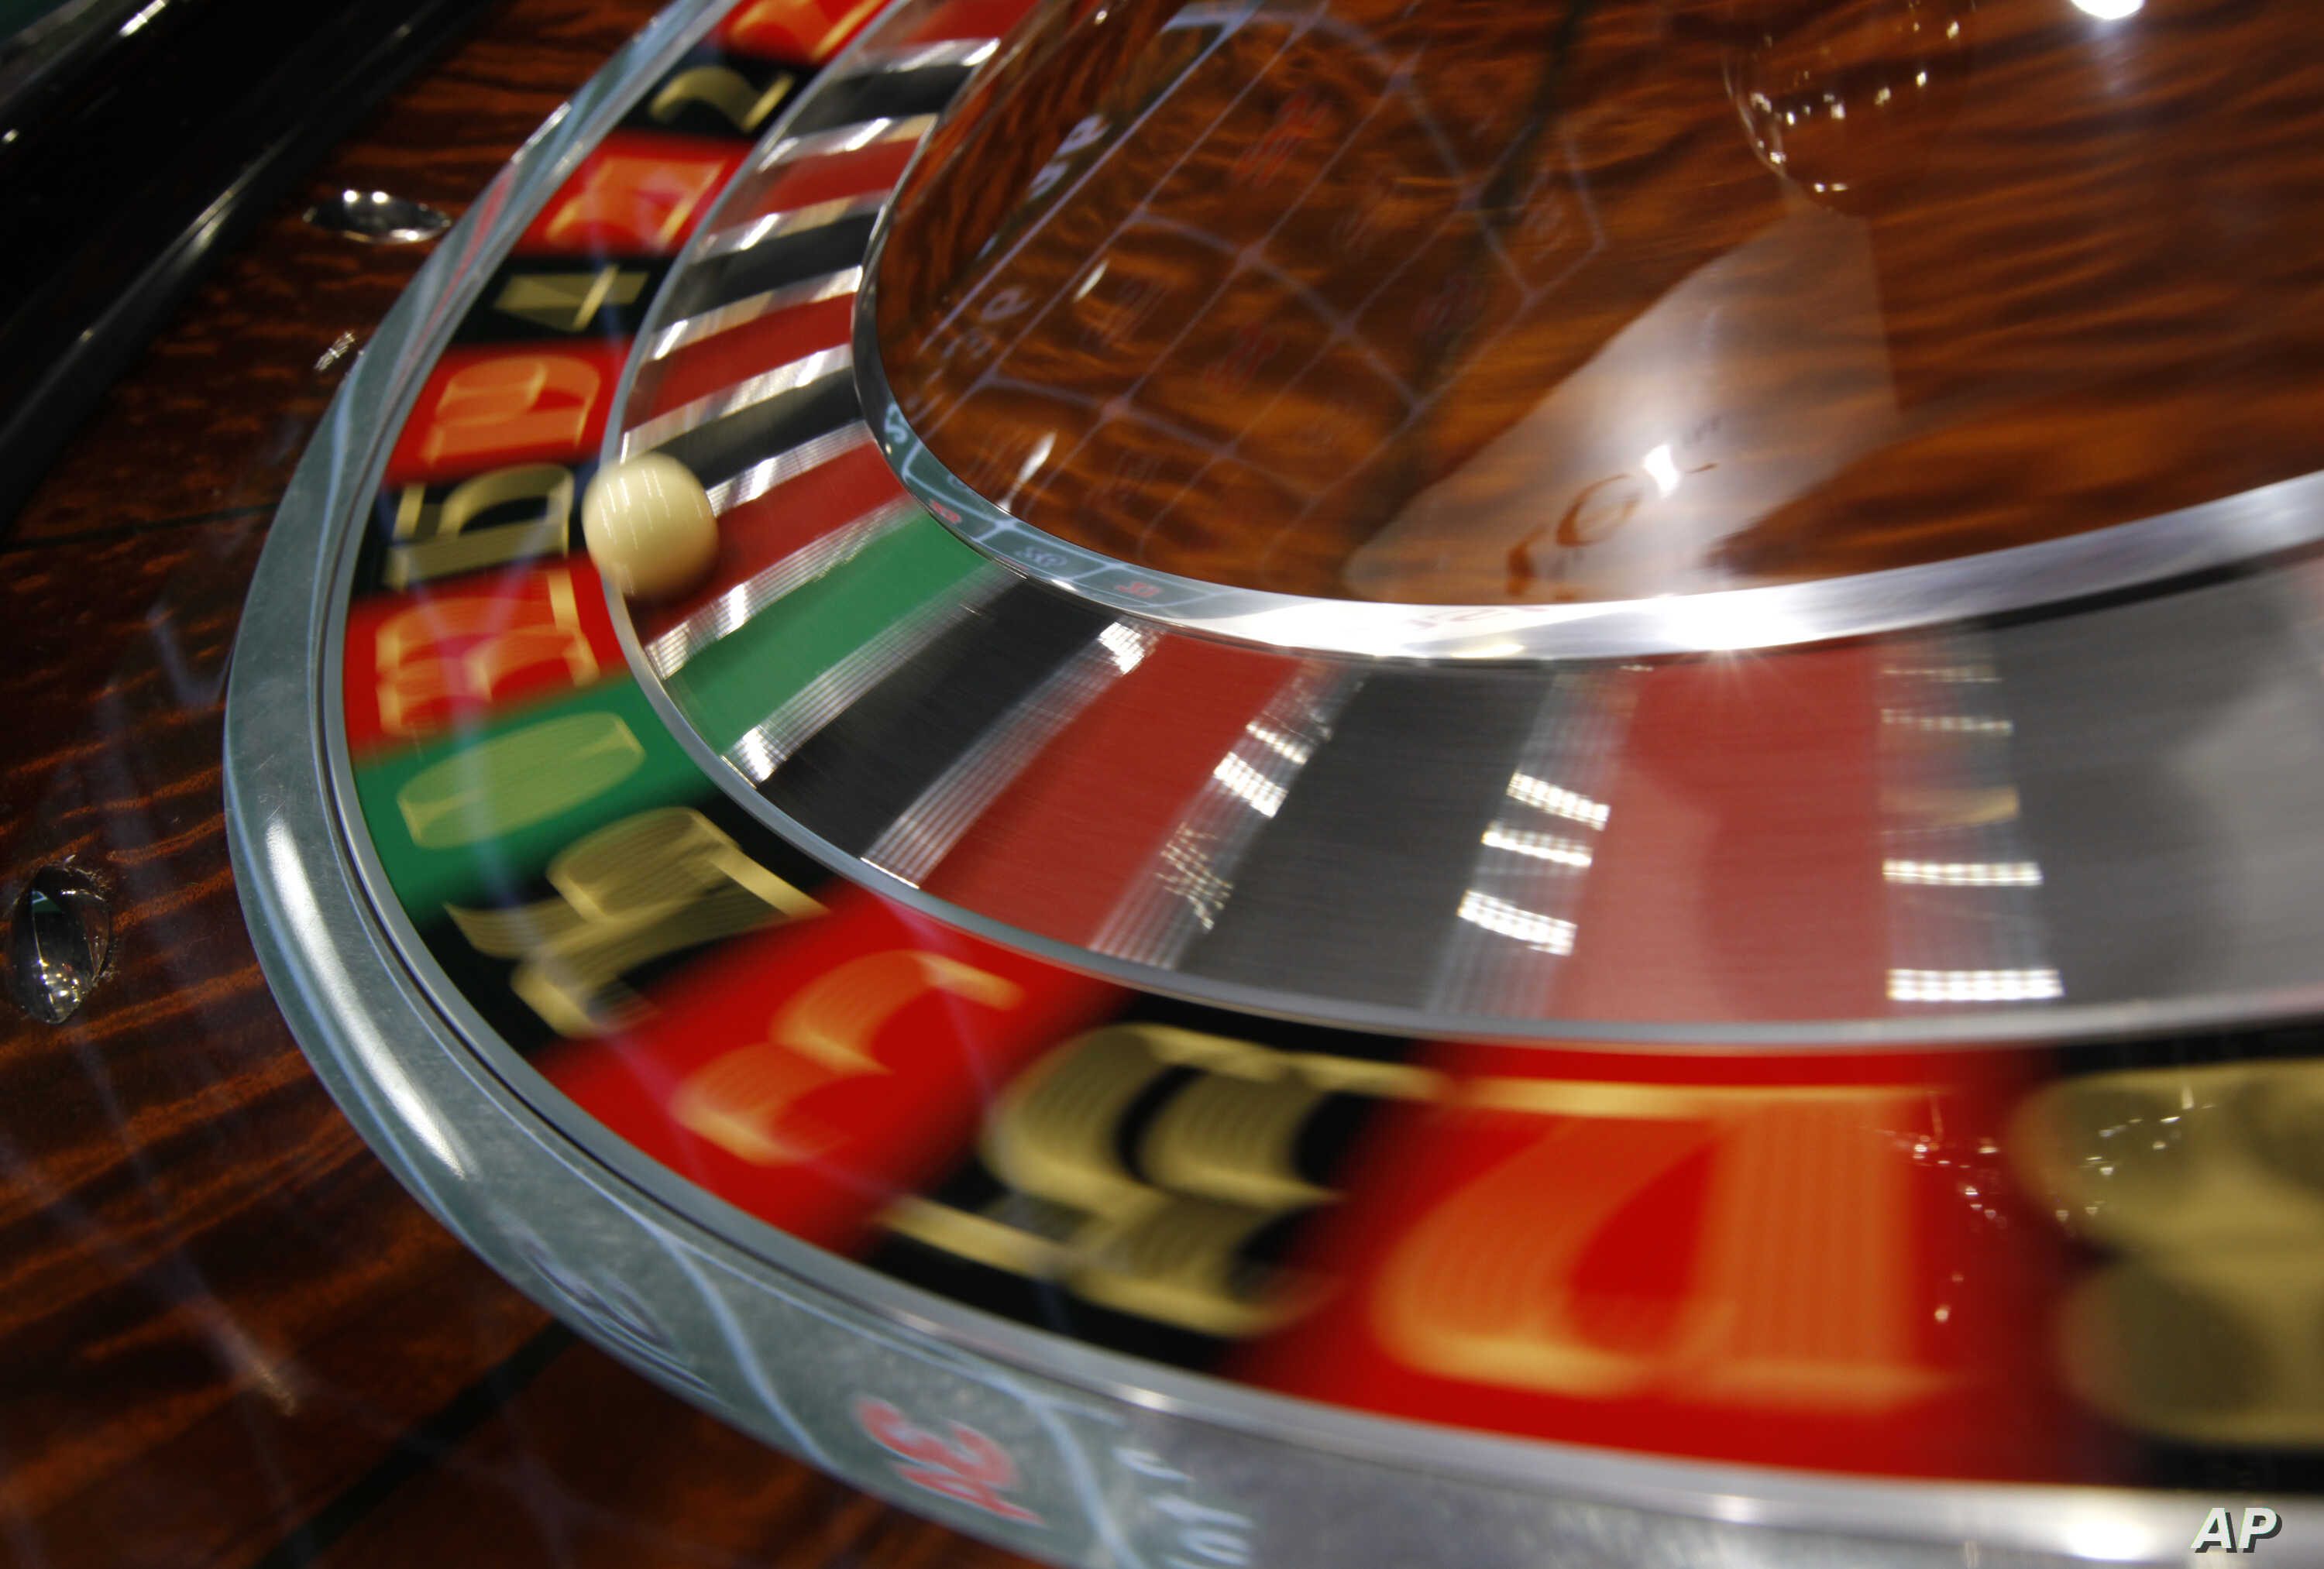 Analysts: Thailand Taking Bet on Legalizing Casinos | Voice of